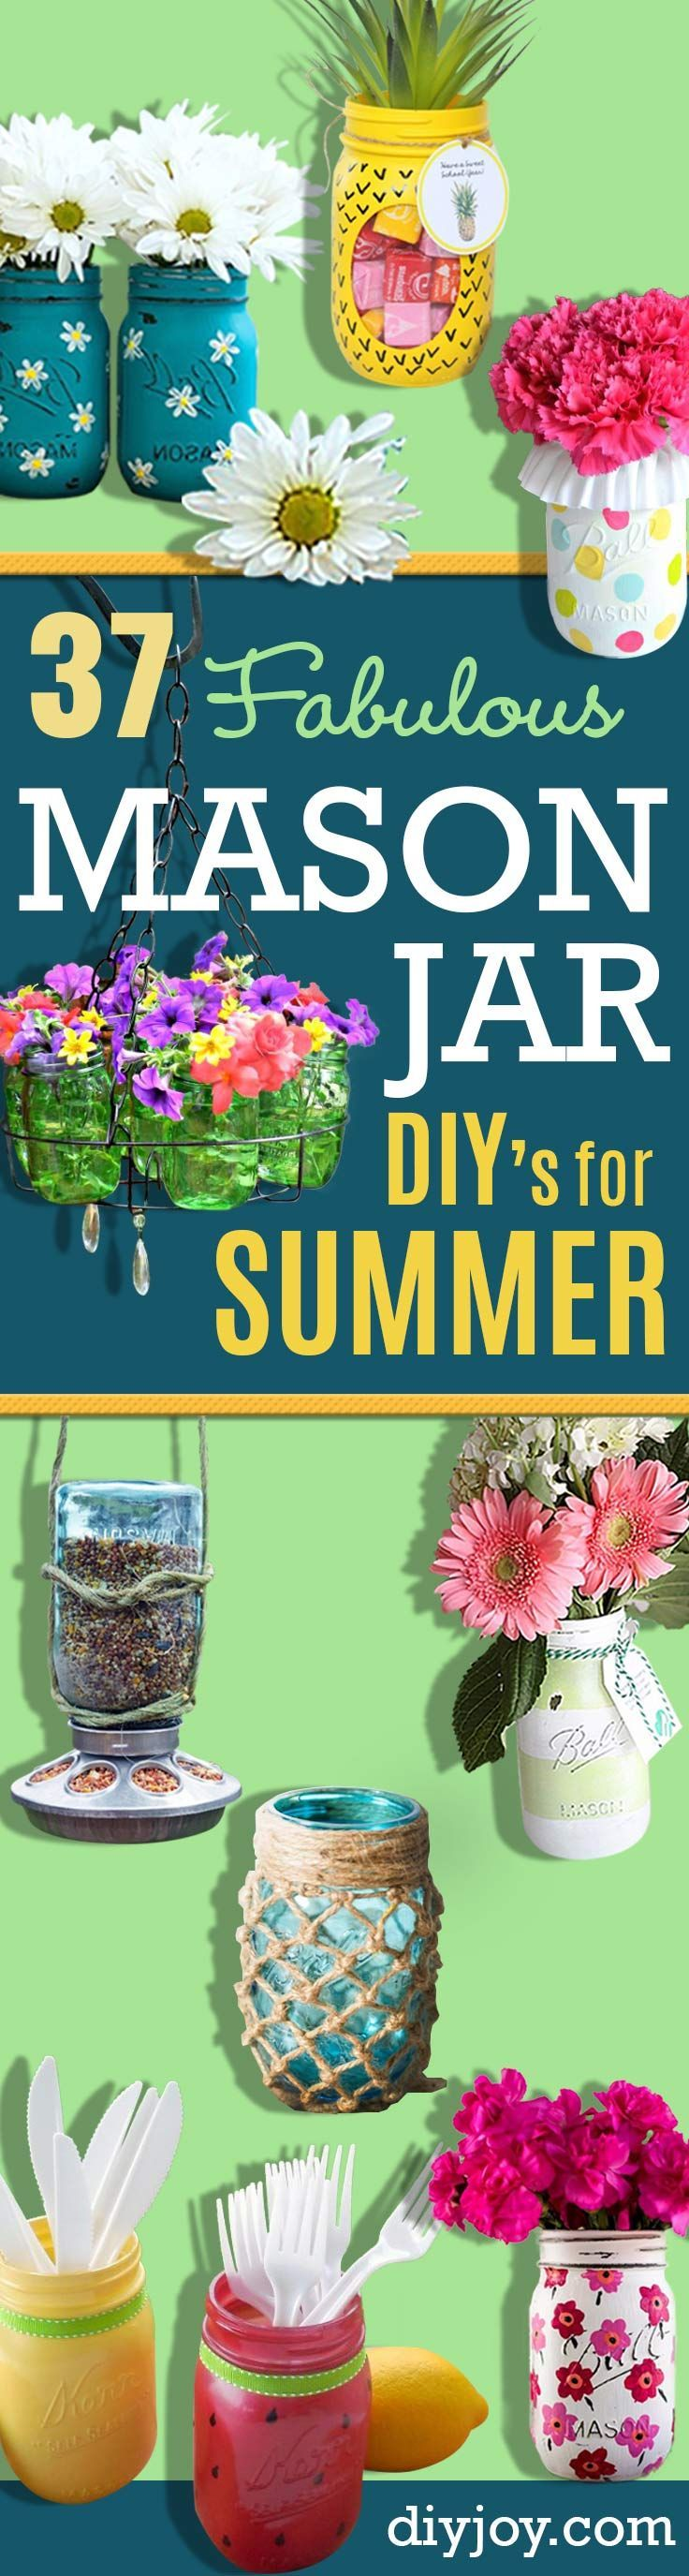 Mason Jar Ideas for Summer - Mason Jar Crafts, Decor and Gifts, Centerpieces and DIY Projects With Jars That Are Perfect For Summertime - Fun and Easy Lights, Cool Vases, Creative 4th of July Ideas diyjoy.com/...